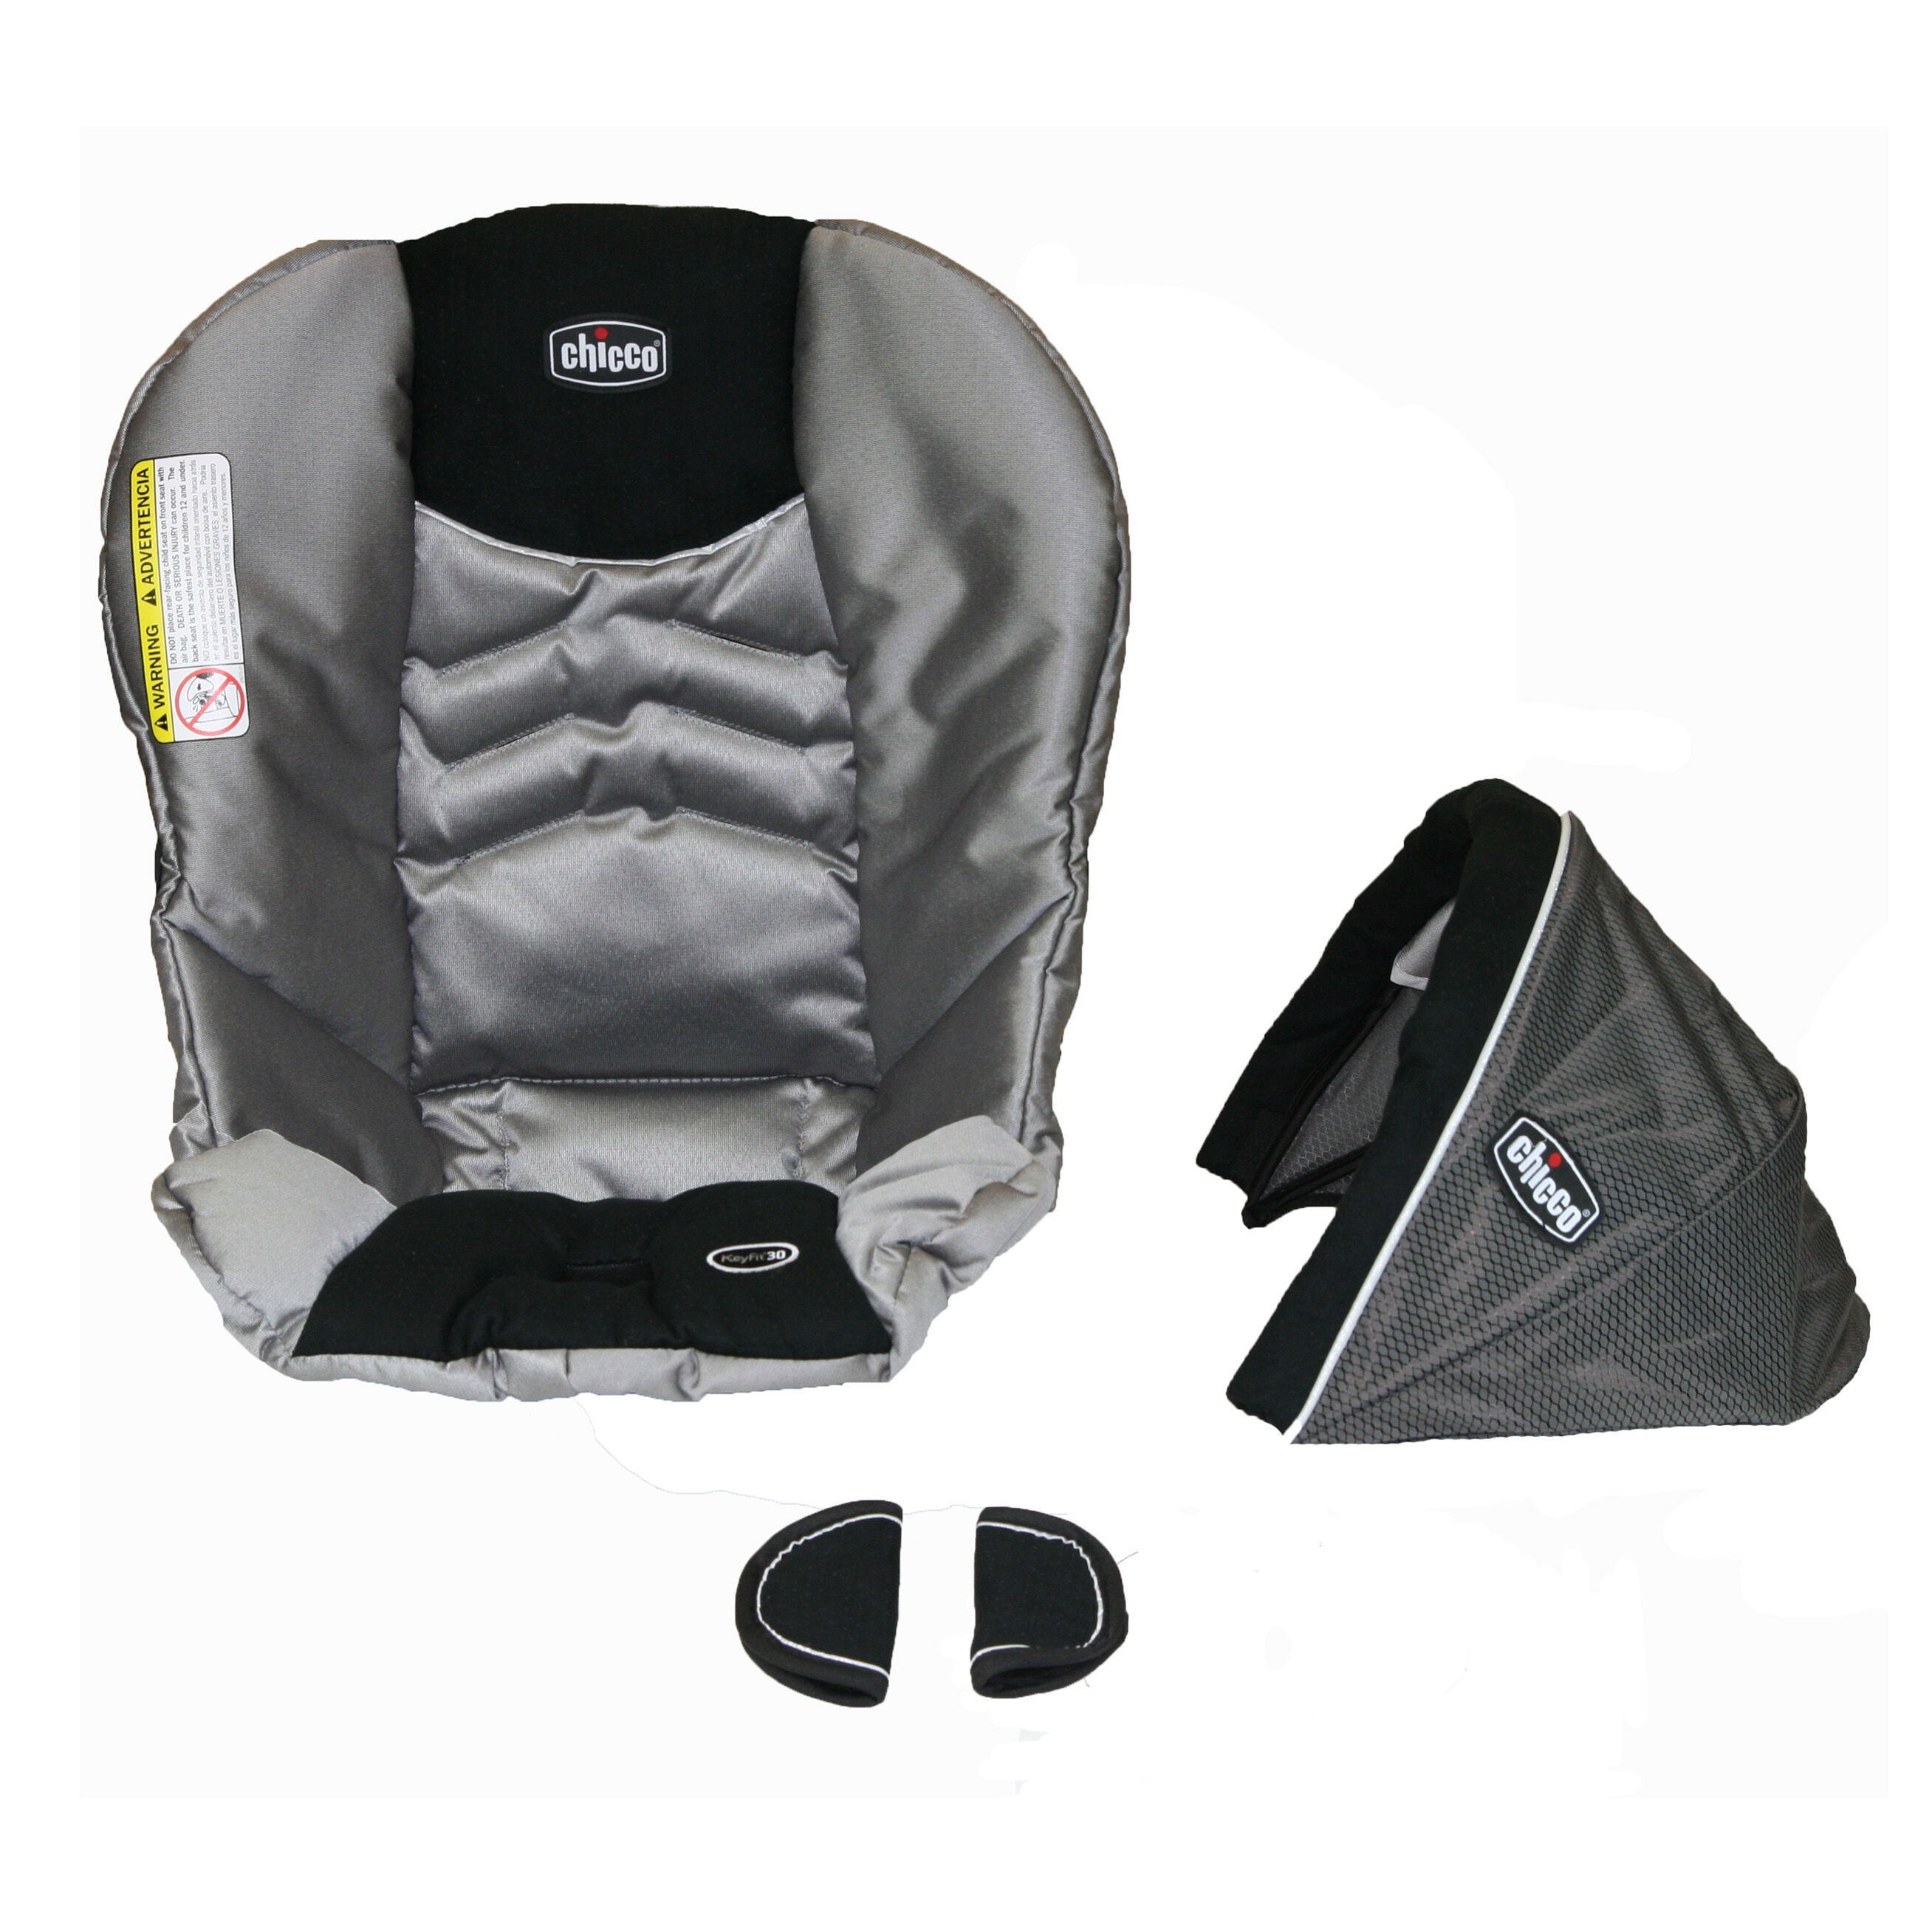 Chicco KeyFit 30 replacement seat cover canopy and shoulder pads for harness - Graphica  sc 1 st  Chicco & Chicco KeyFit Seat Cover Canopy and Pads